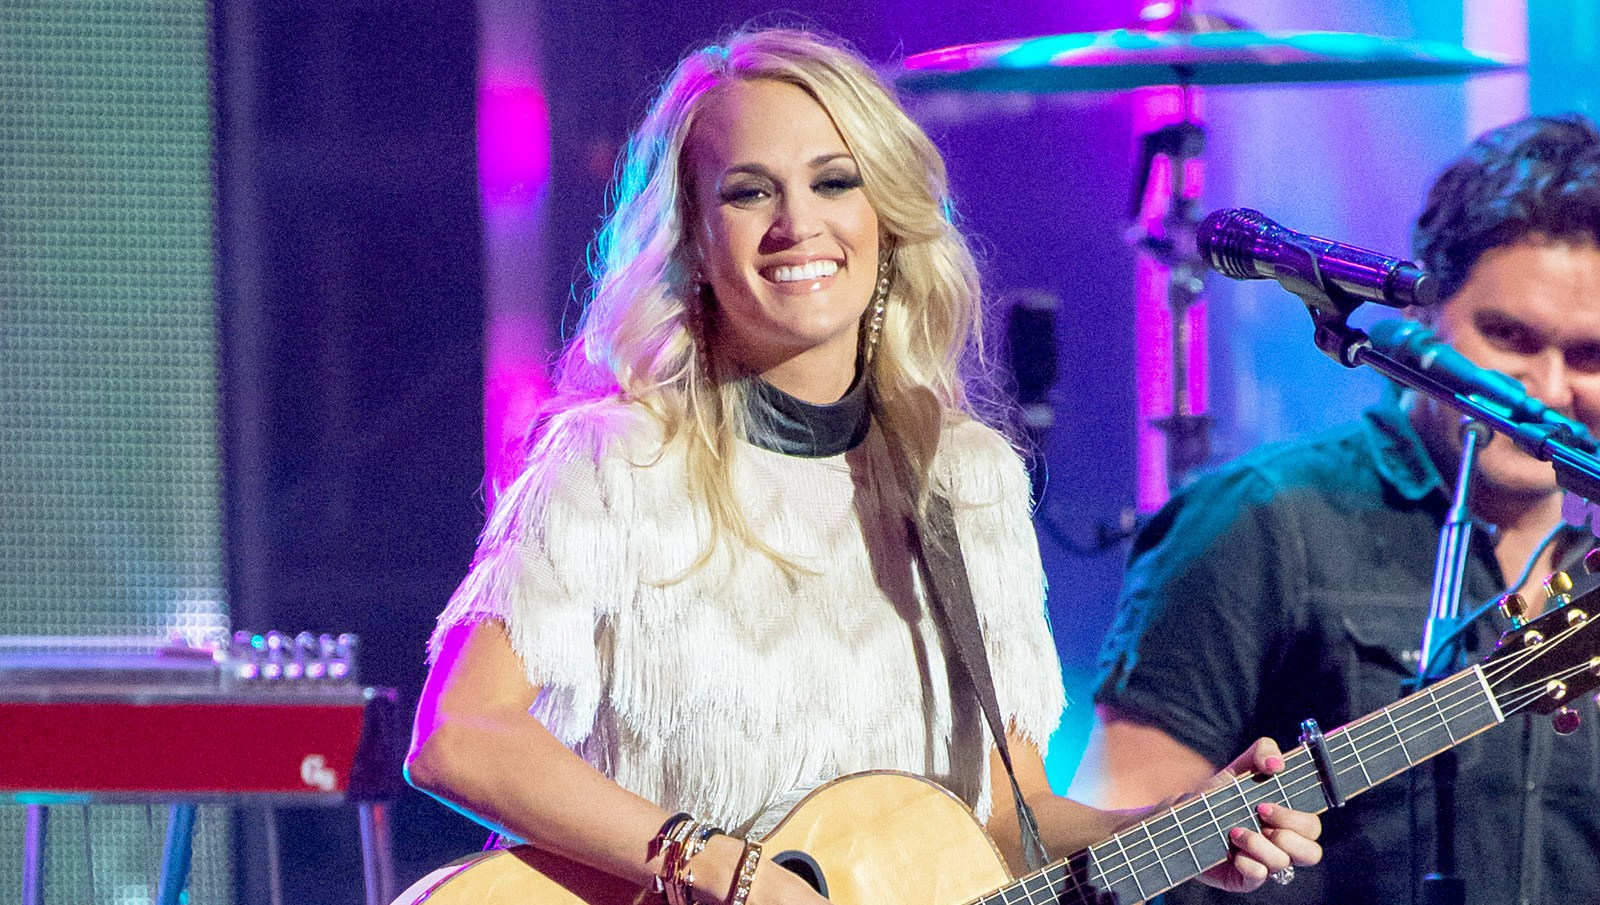 Carrie Underwood performs on 'Jimmy Kimmel Live' on October 27, 2015 in Los Angeles, California.